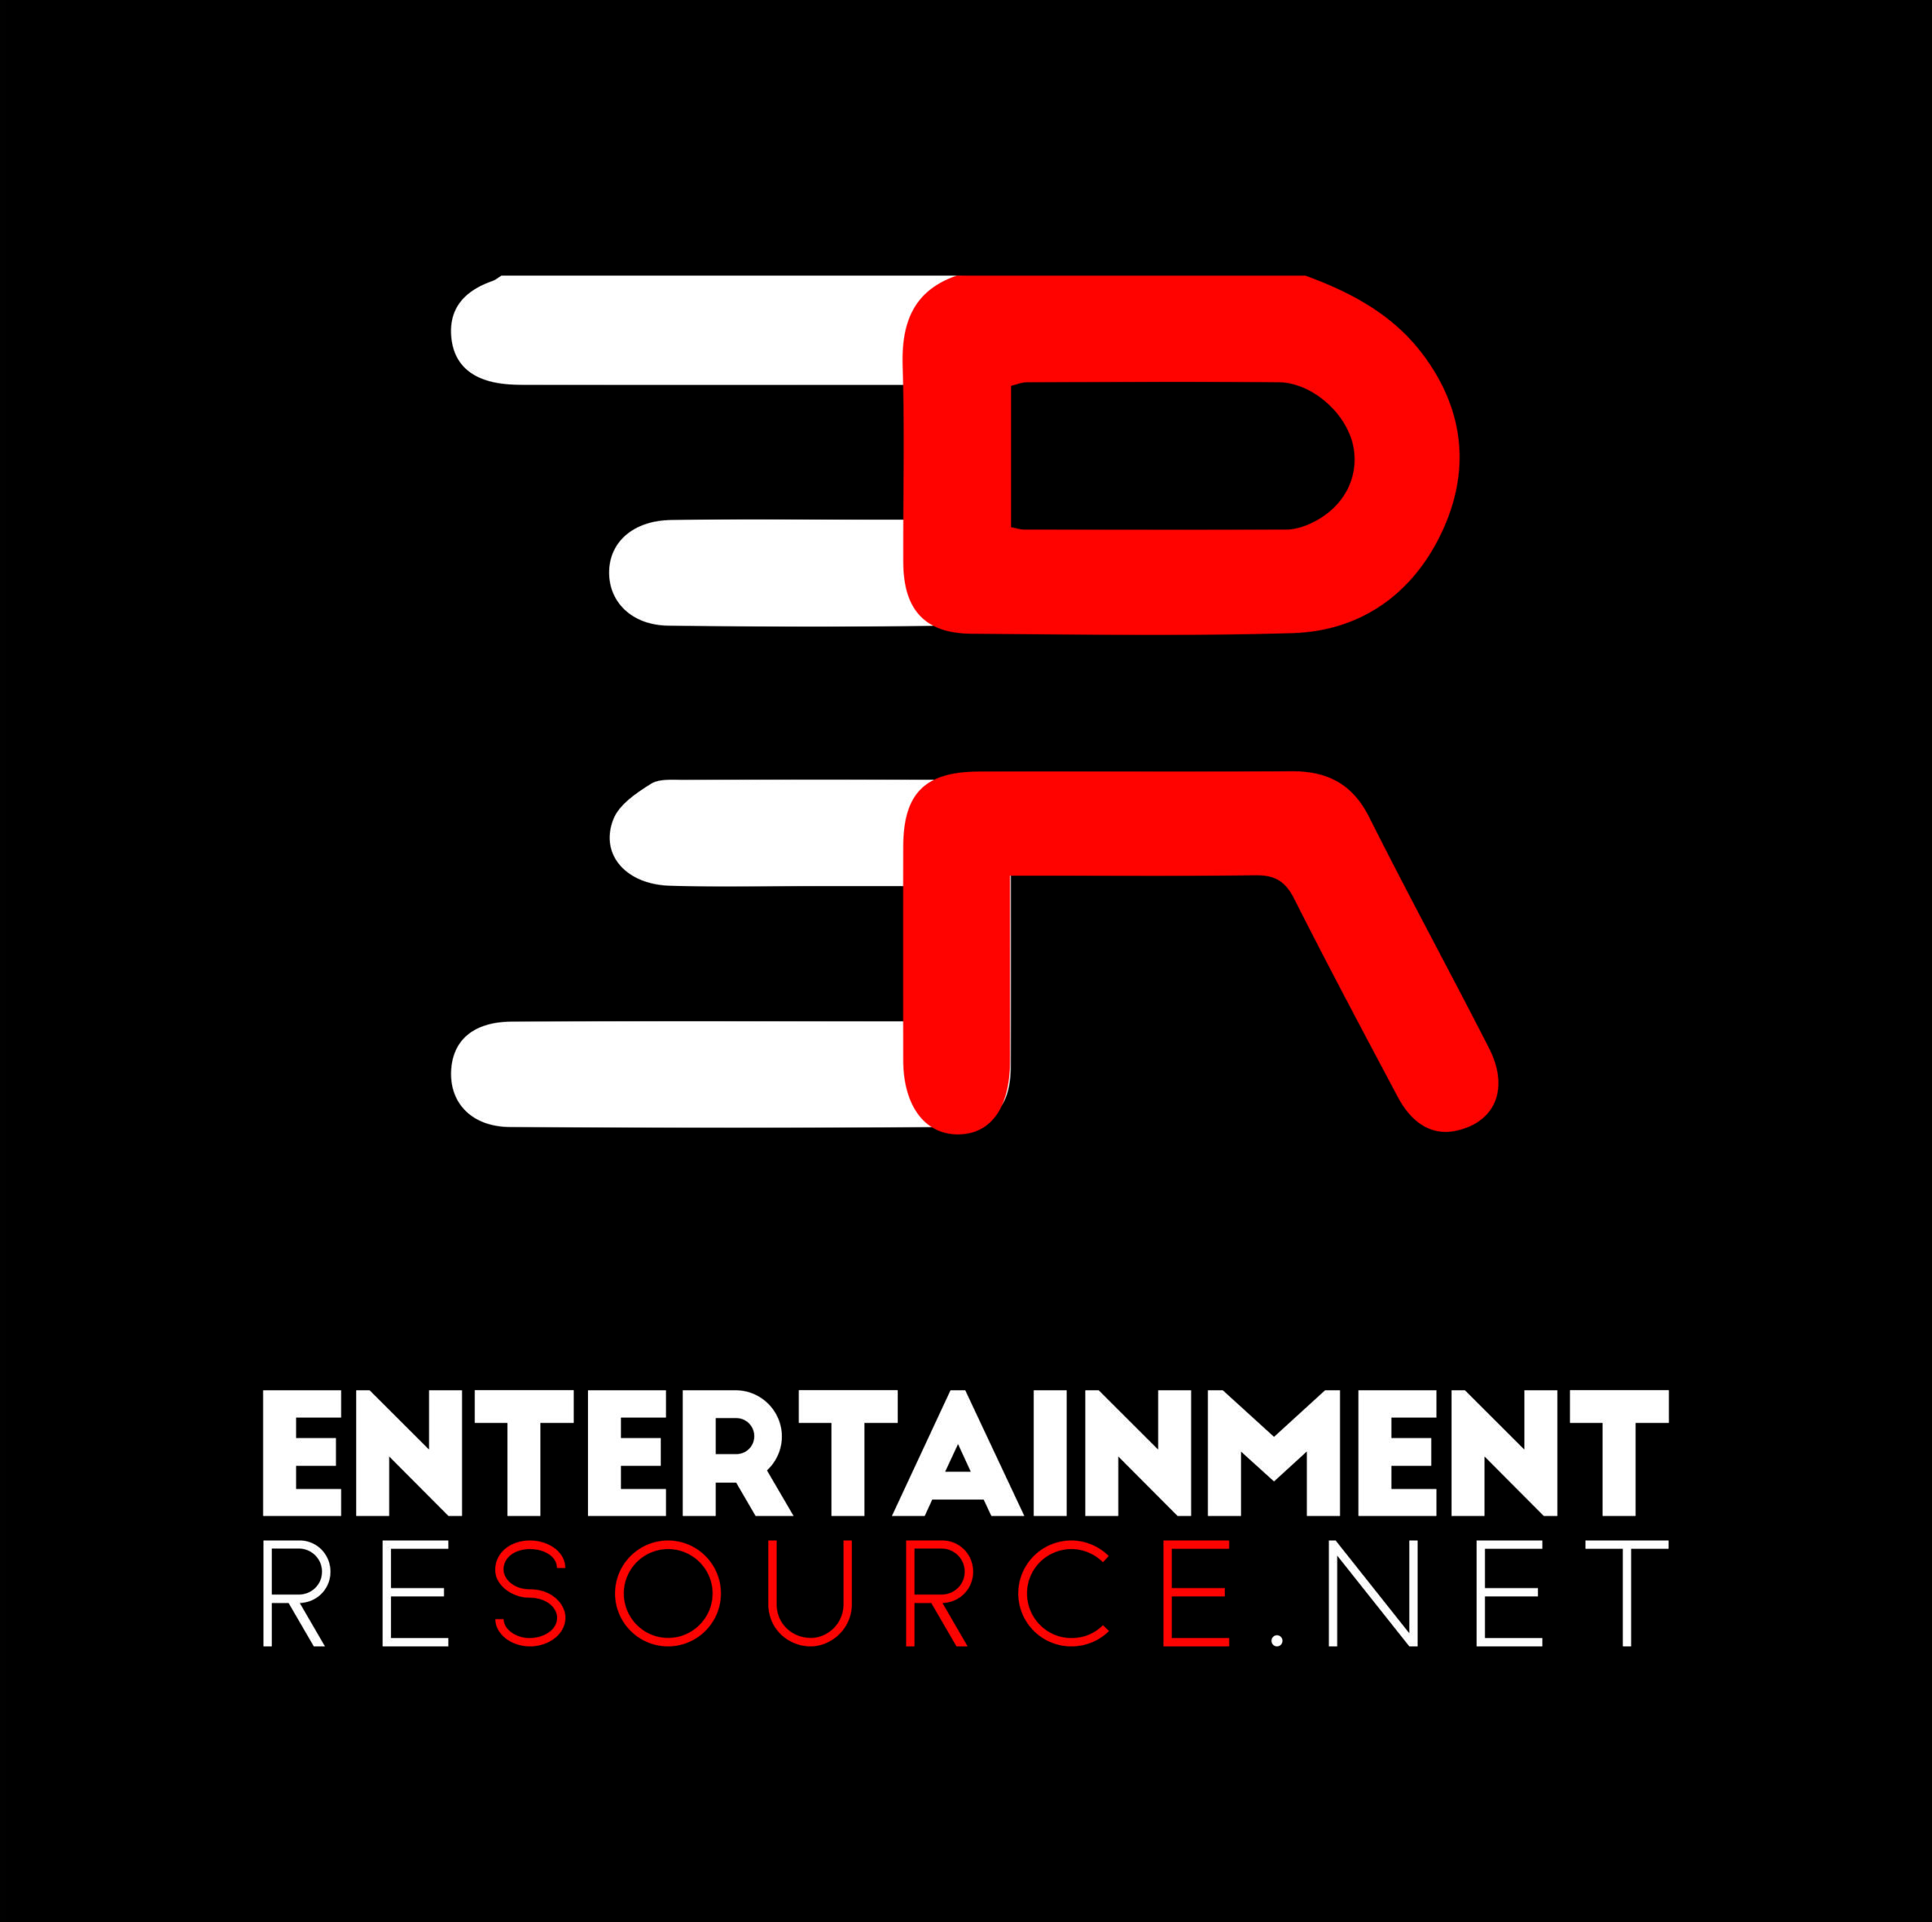 Entertainment Resource.net